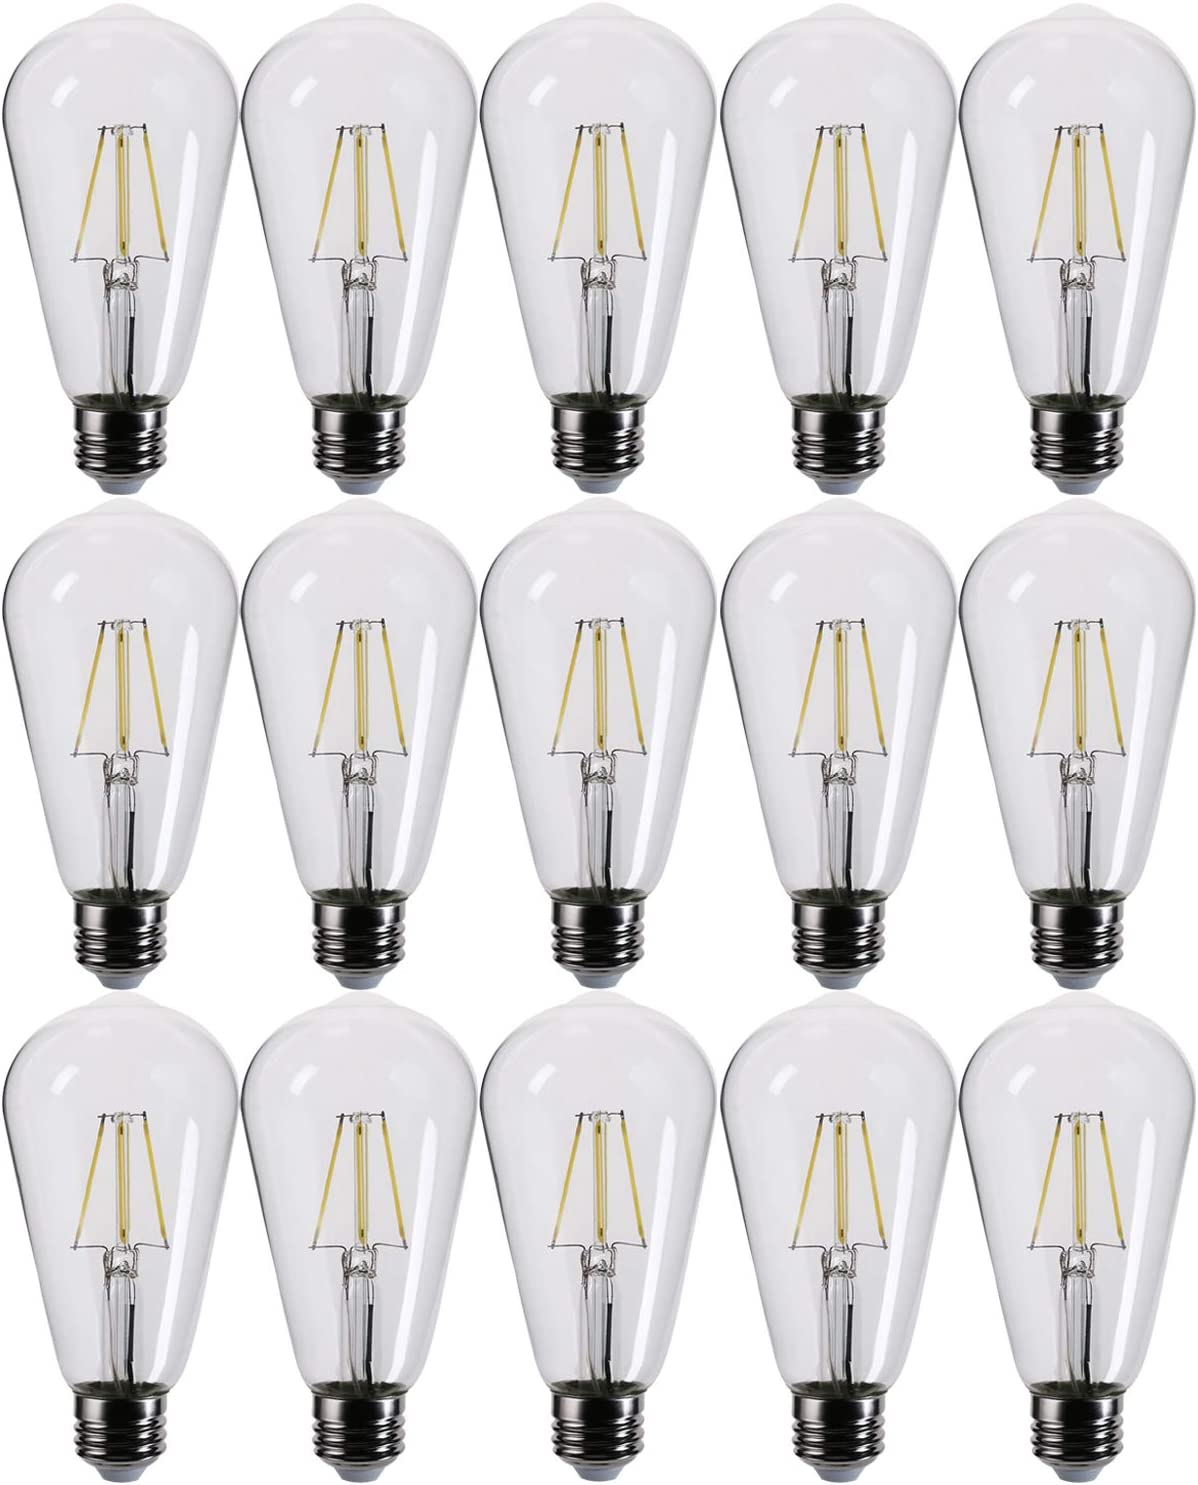 FLILED Portland Mall LED Edison Bulbs 60W Vintag Dimmable Equivalent 7W Clear New sales